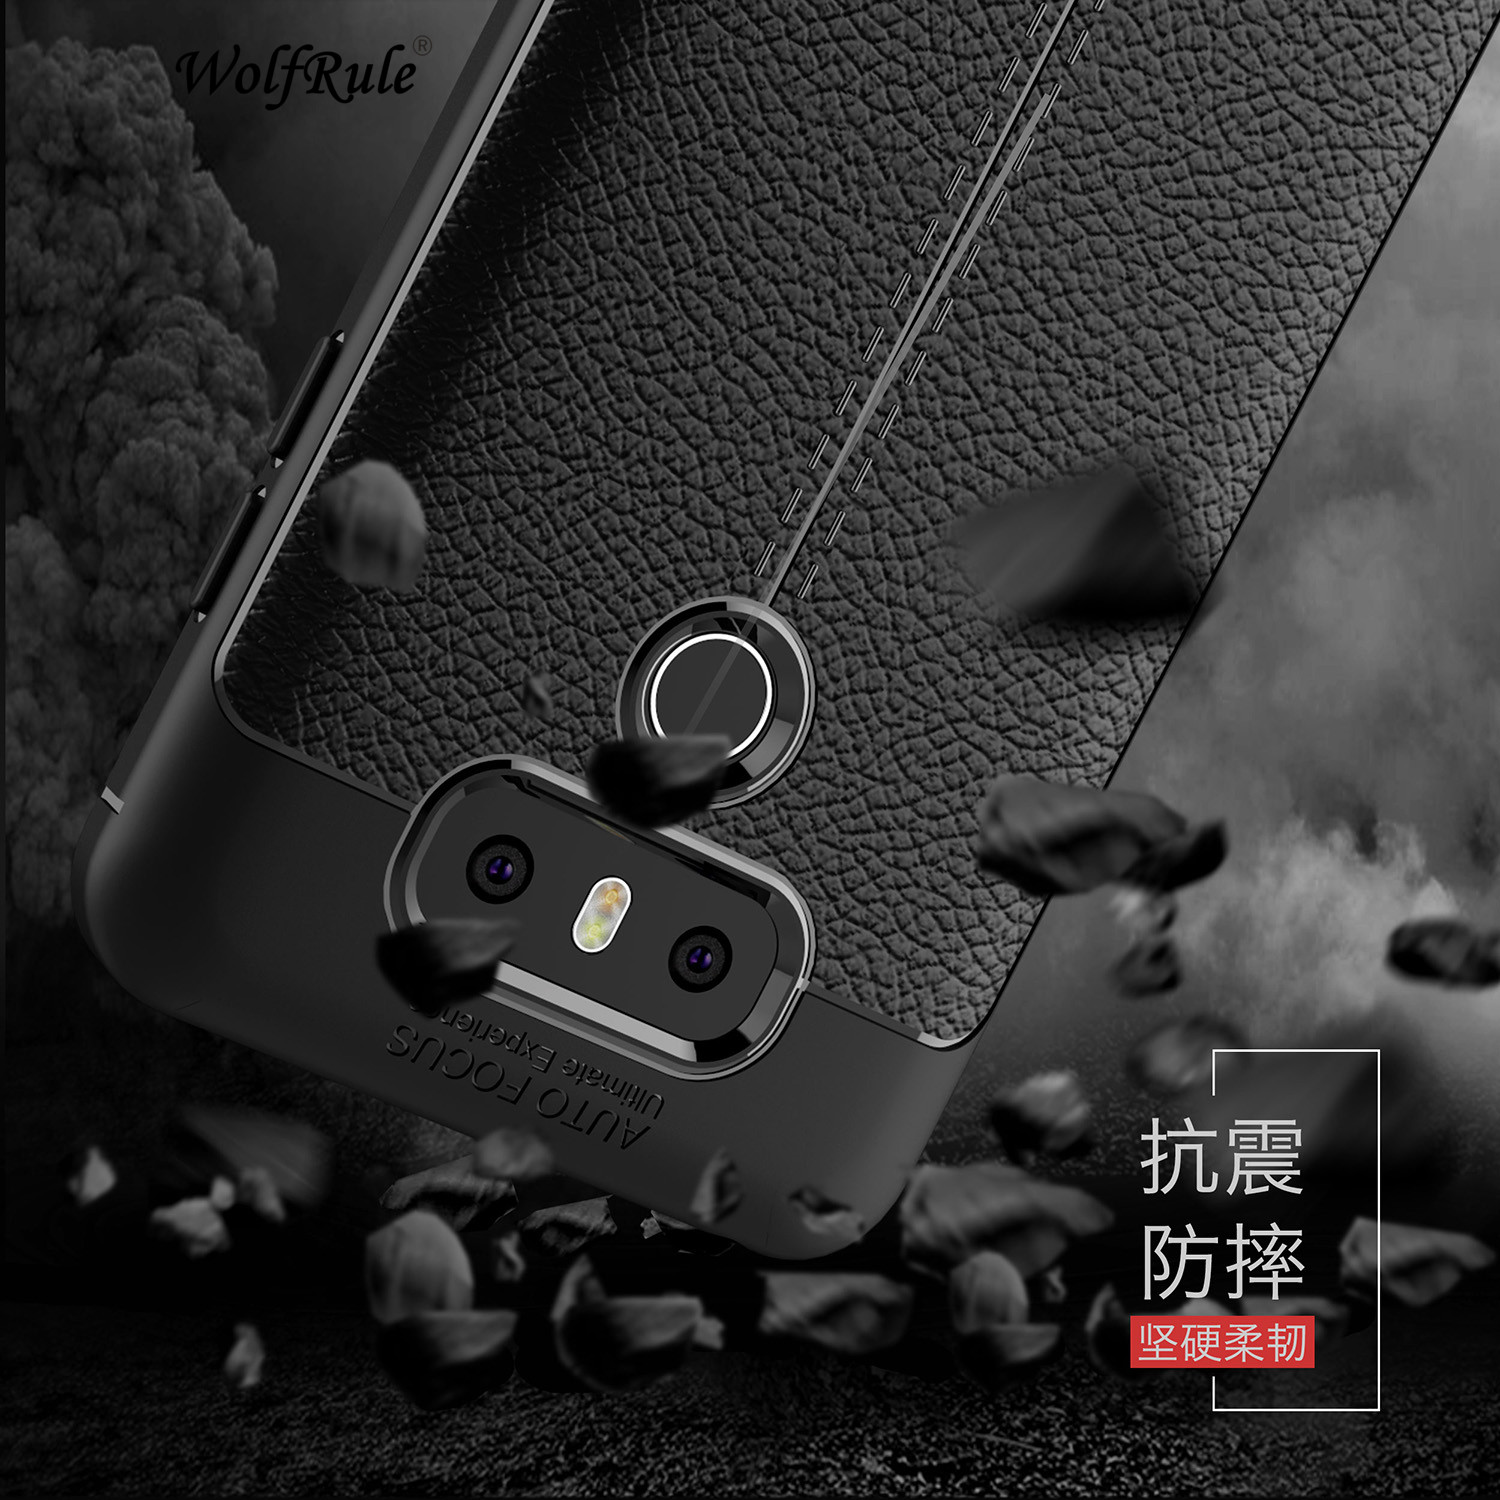 Wolfrule Sfor Phone Case LG G6 Cover Shockproof Luxury Leather Soft TPU Case For LG G6 Case For LG G 6 H870 H873 H870DS Funda ]